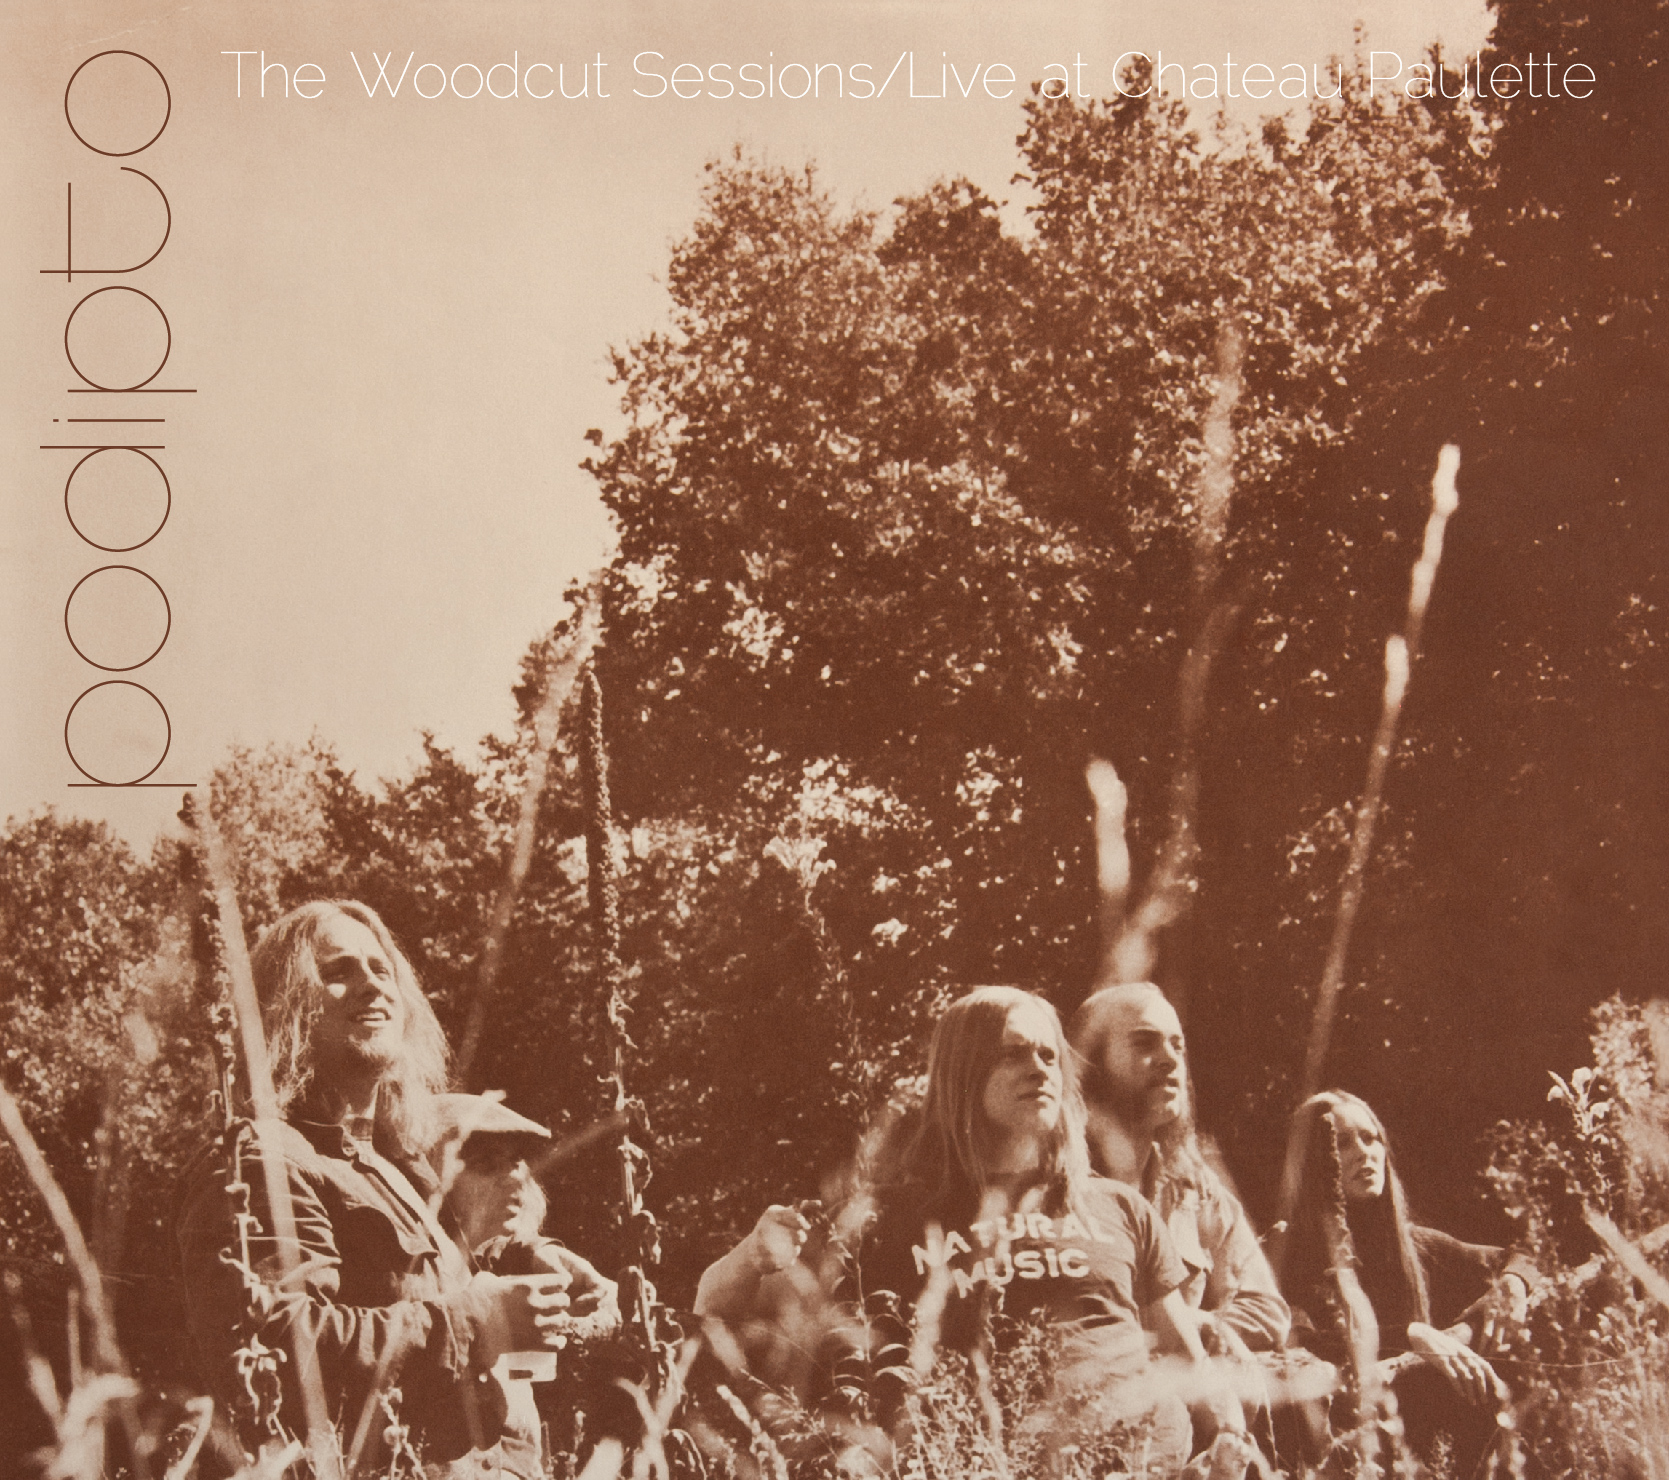 The Woodcut Sessions / Live at Chateau Paulette  is now available on CD and digital downloadin the Podipto.com store.